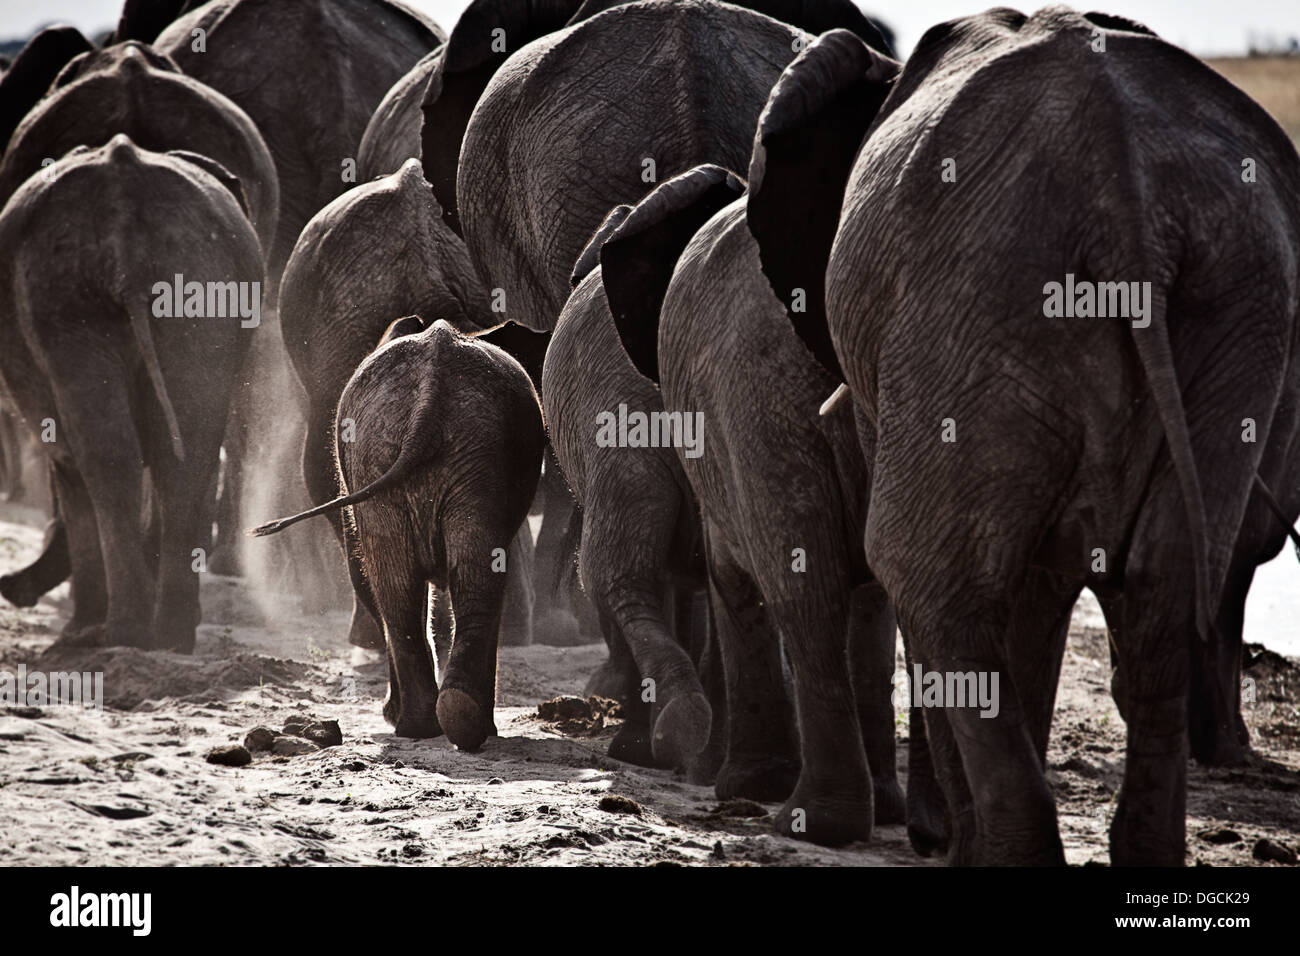 Elephants walk off along a river bank. - Stock Image